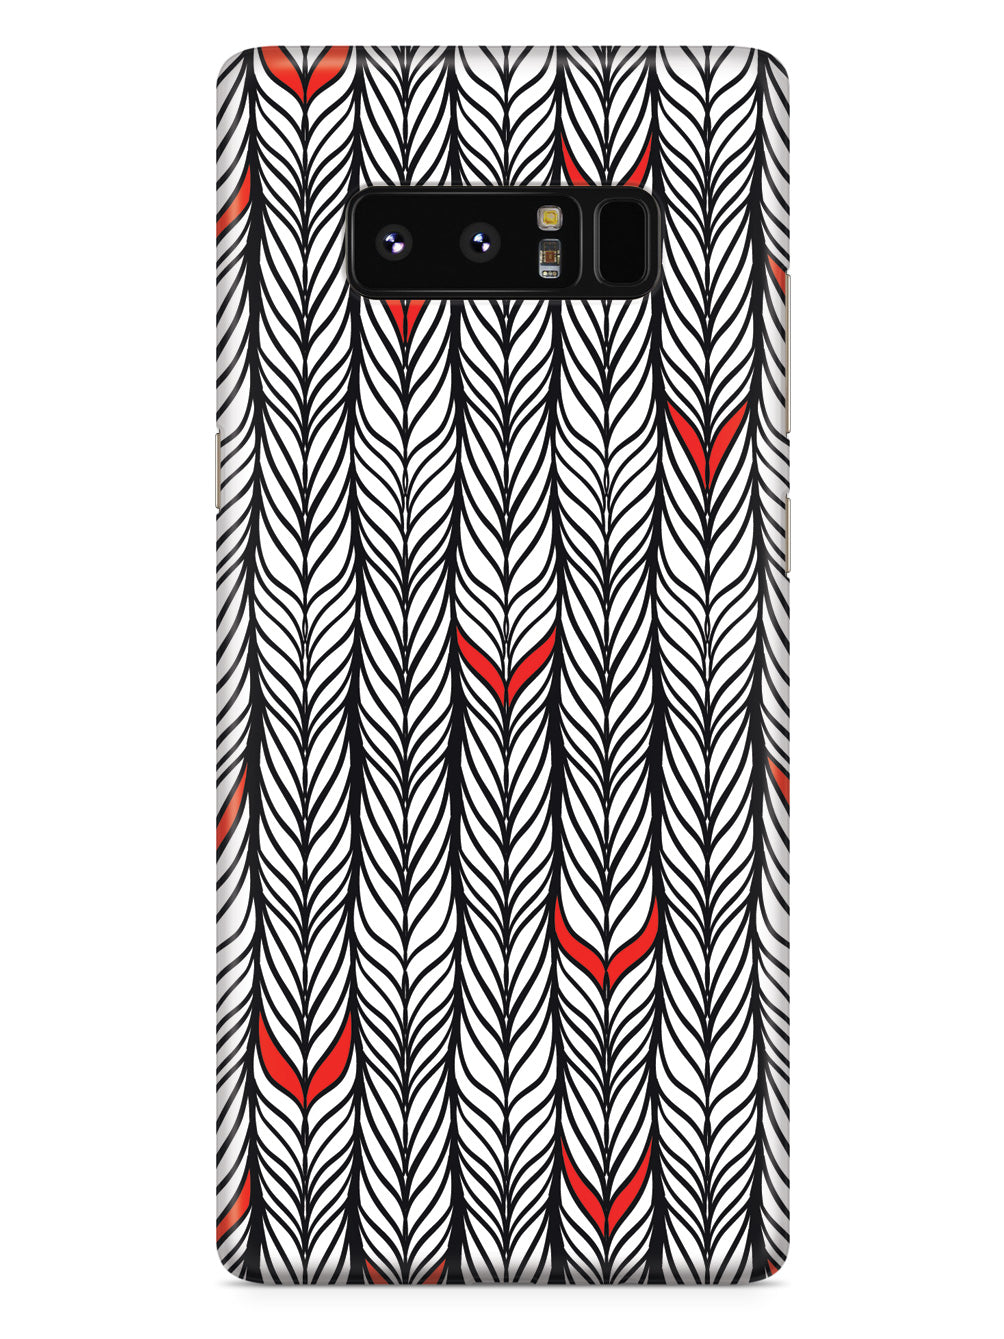 Braids Texture with Red Accents Case